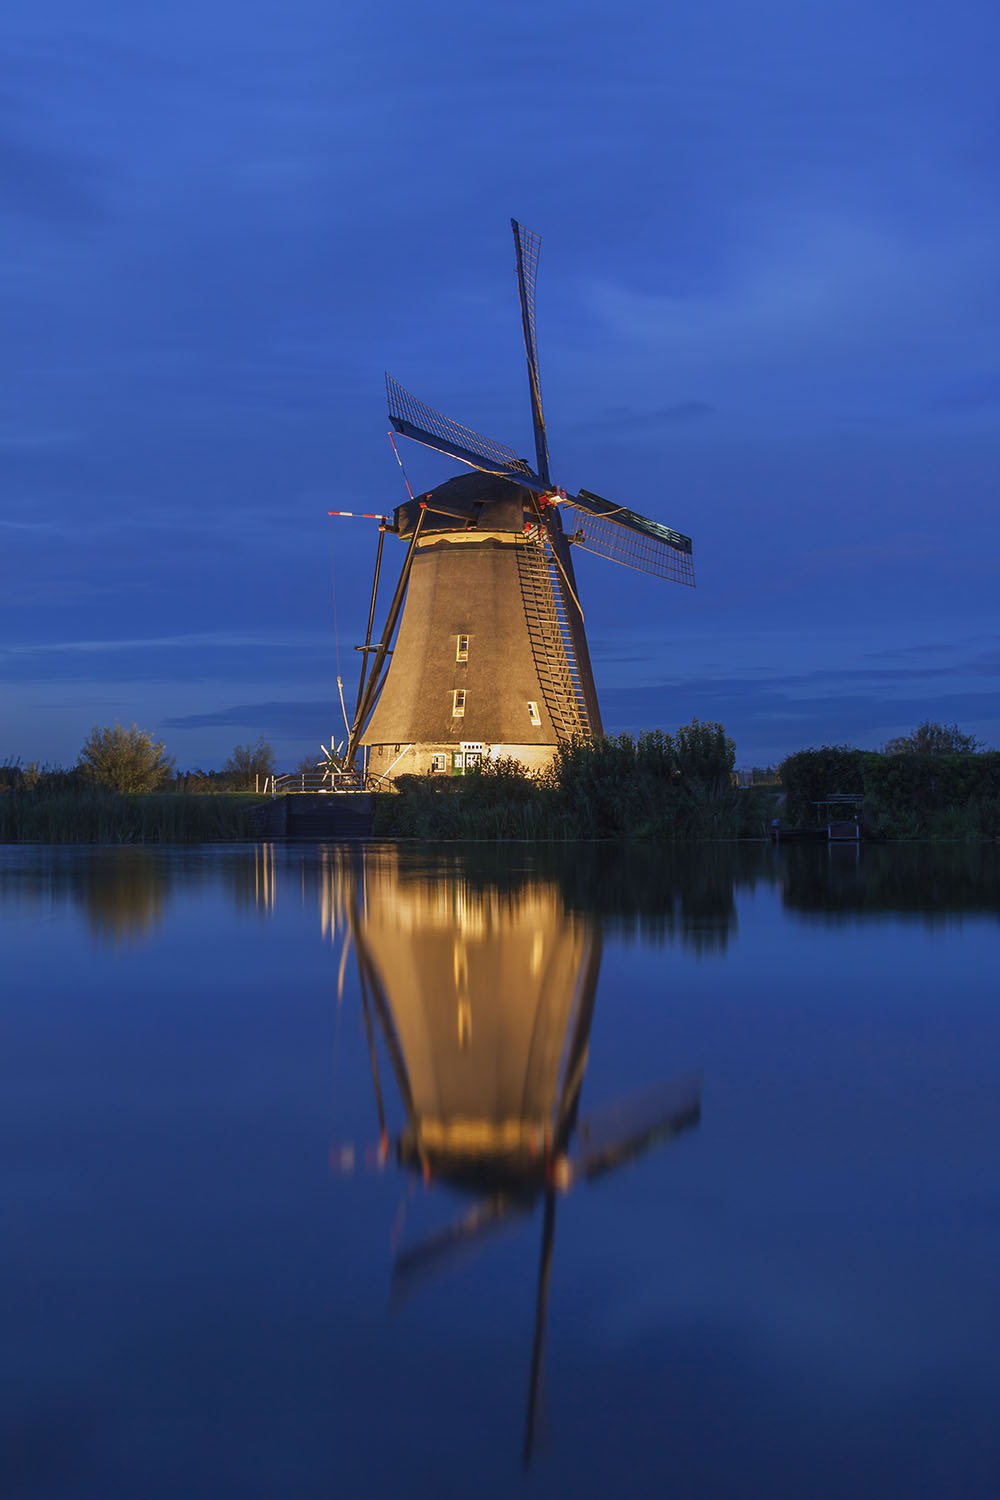 illuminated-mill-a3.jpg